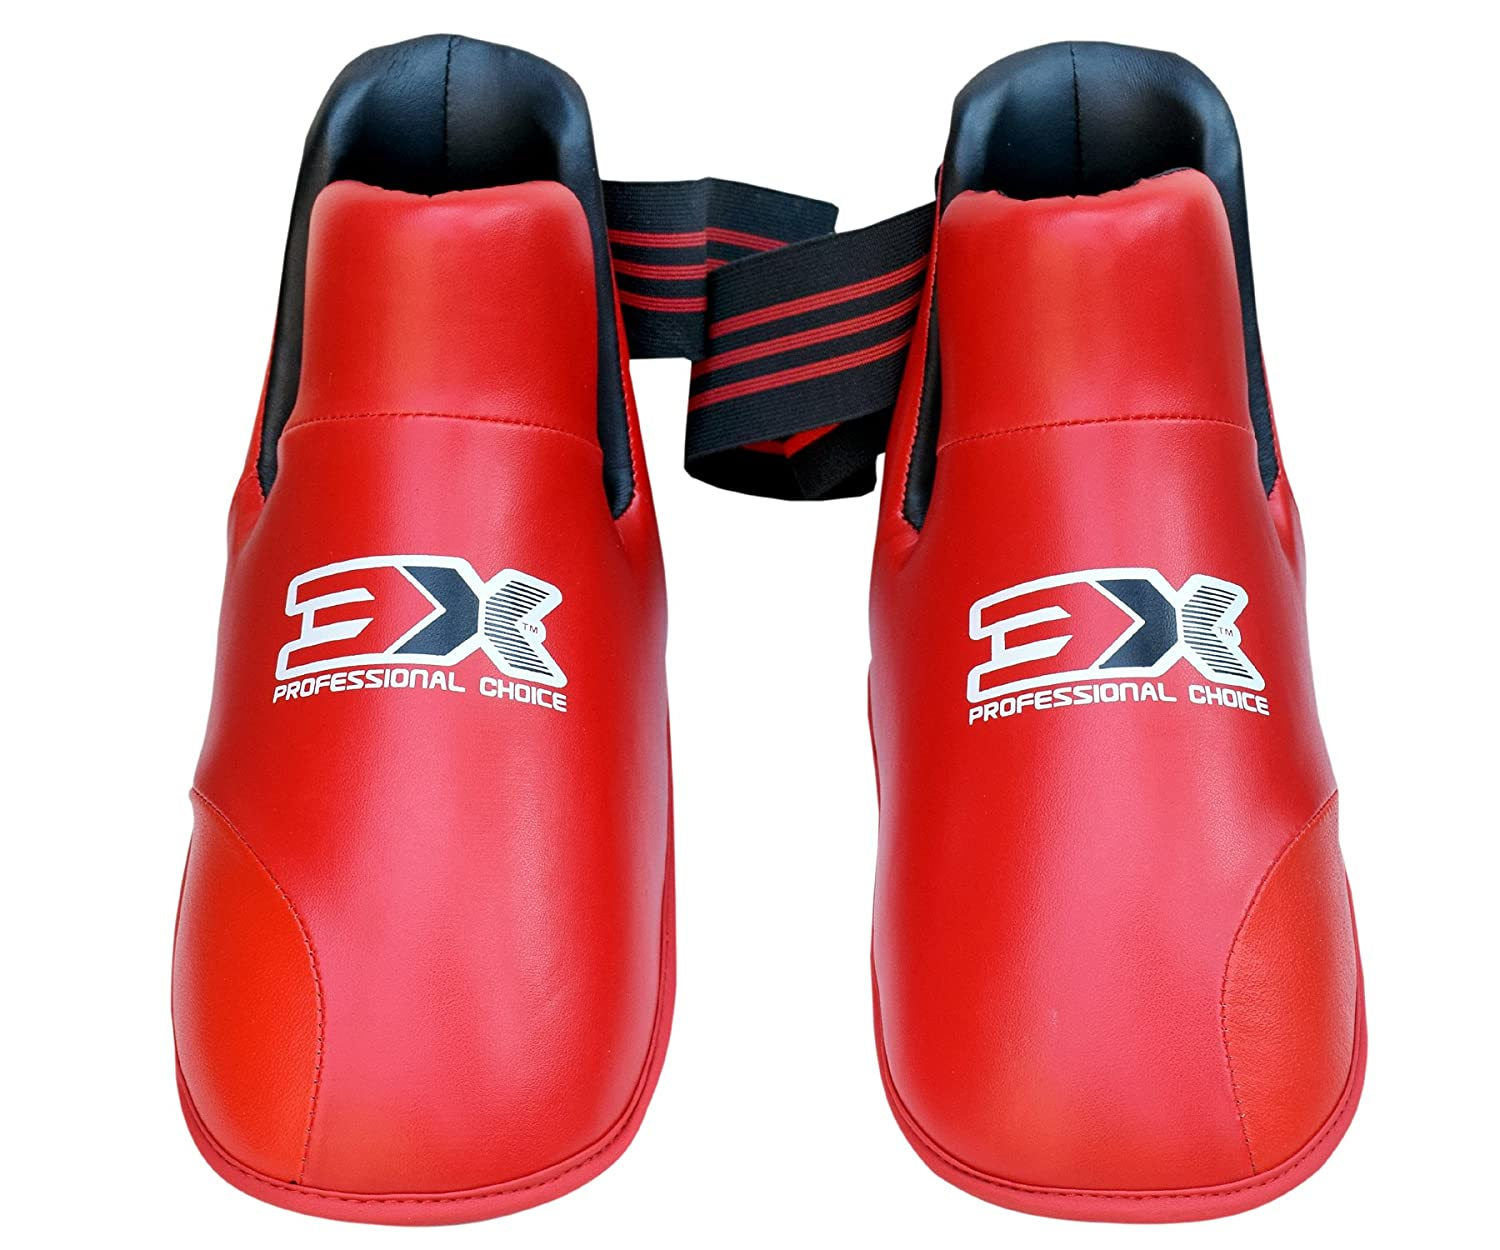 3X Professional Choice KARATE Shoes RED 3X Sports